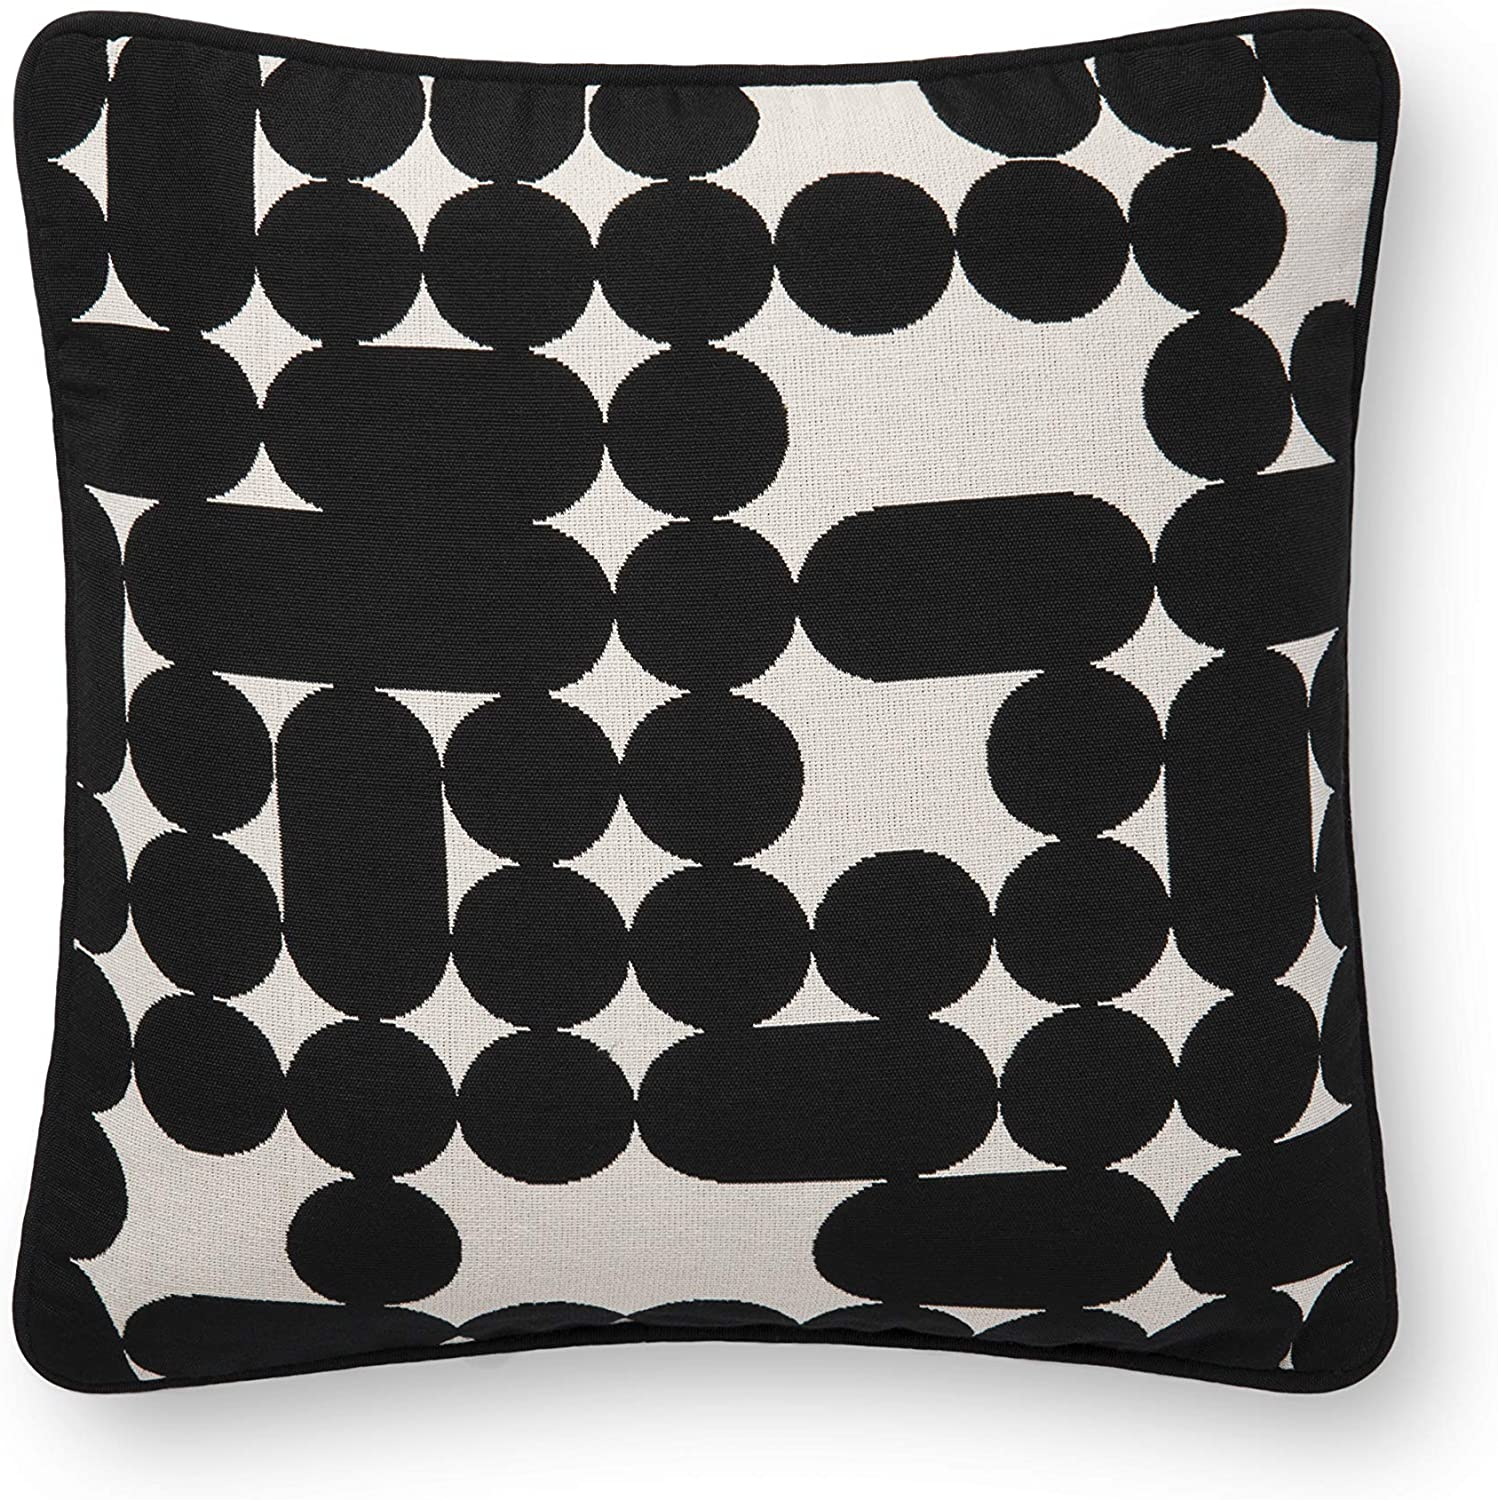 Now House by Jonathan Adler Capsule and Dots Jacquard Pillow, Black and White